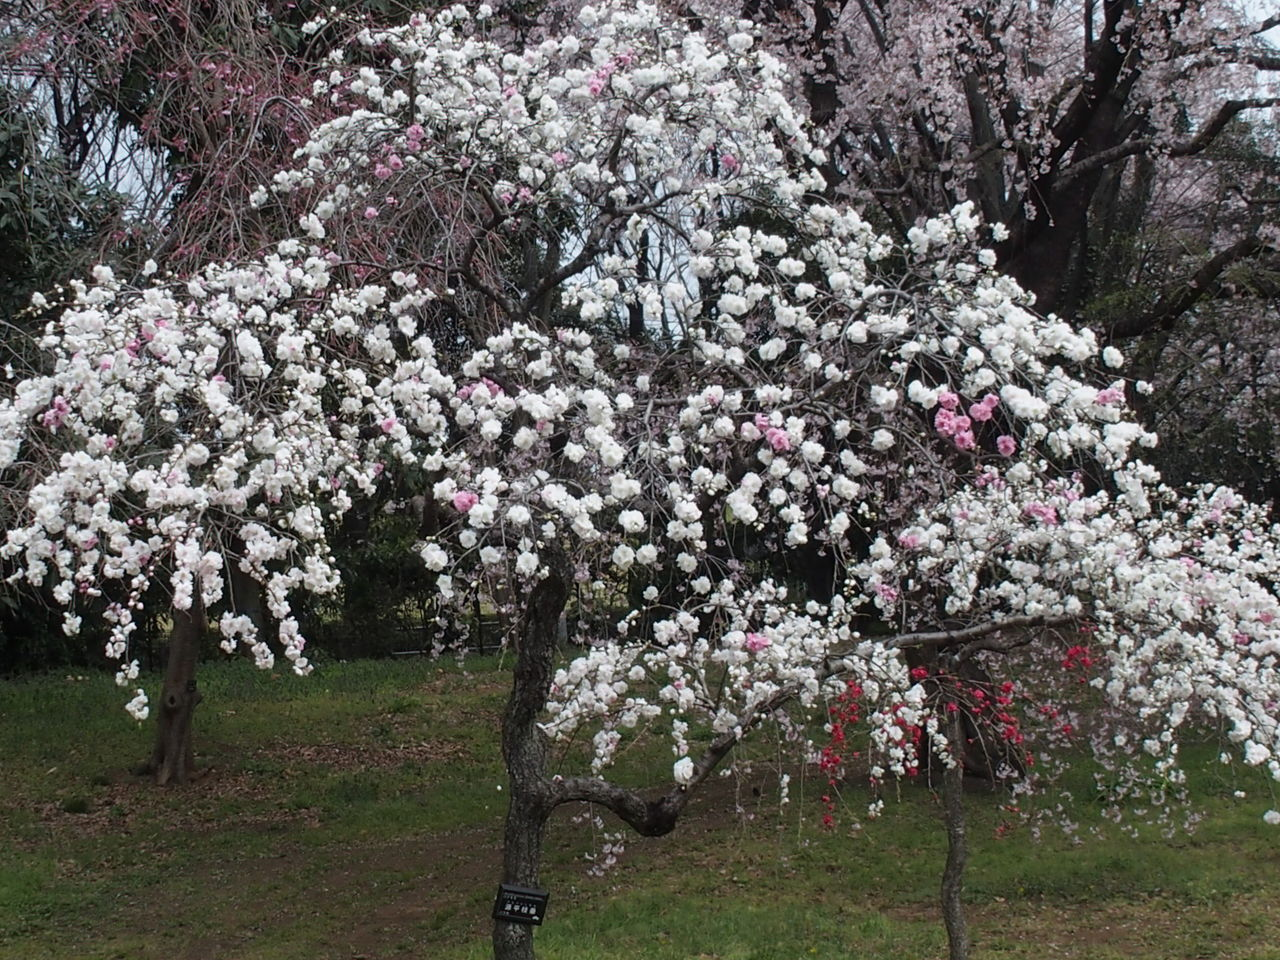 flower, blossom, tree, springtime, cherry blossom, almond tree, nature, fragility, beauty in nature, cherry tree, orchard, branch, apple blossom, freshness, white color, growth, botany, apple tree, no people, cherry, day, outdoors, pink color, blooming, close-up, flower head